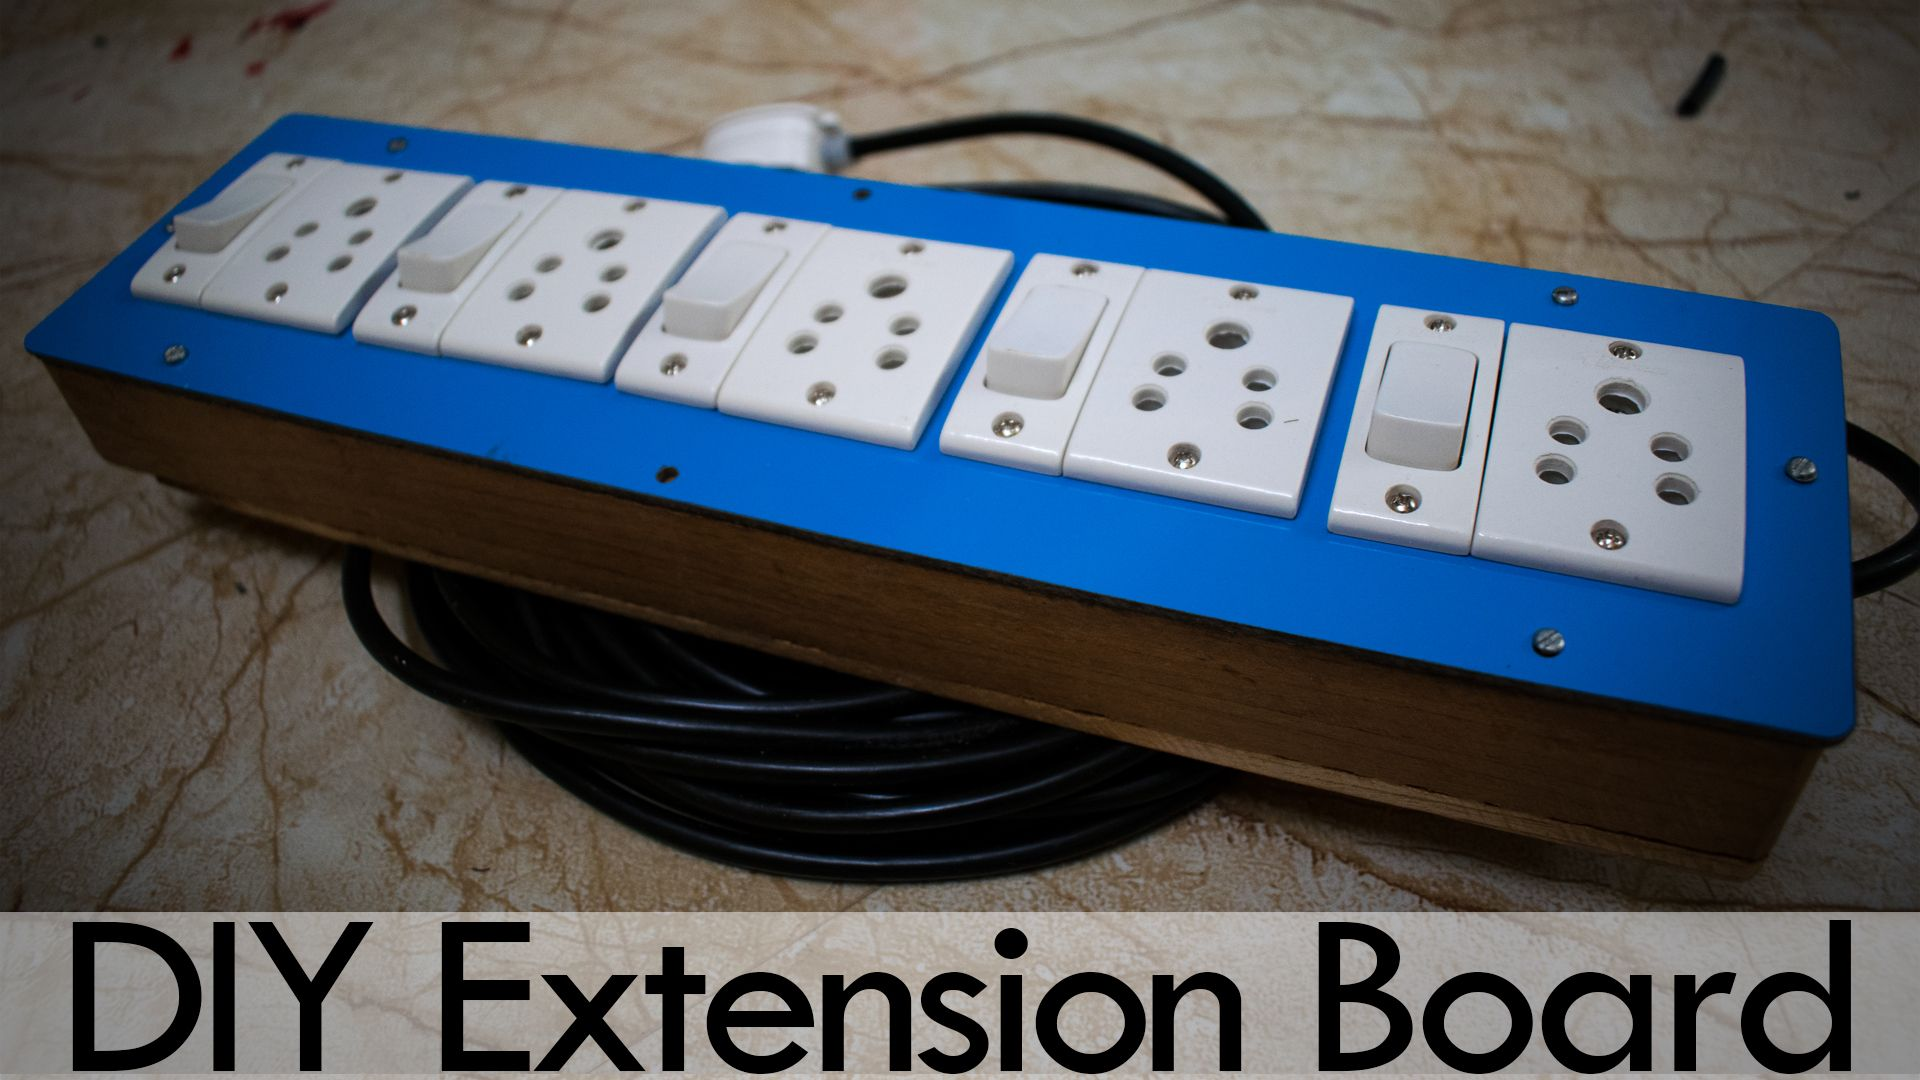 Extension Box Connection Wiring Making Extension Board Diy Extension Board Diy Electrical Diy Youtube